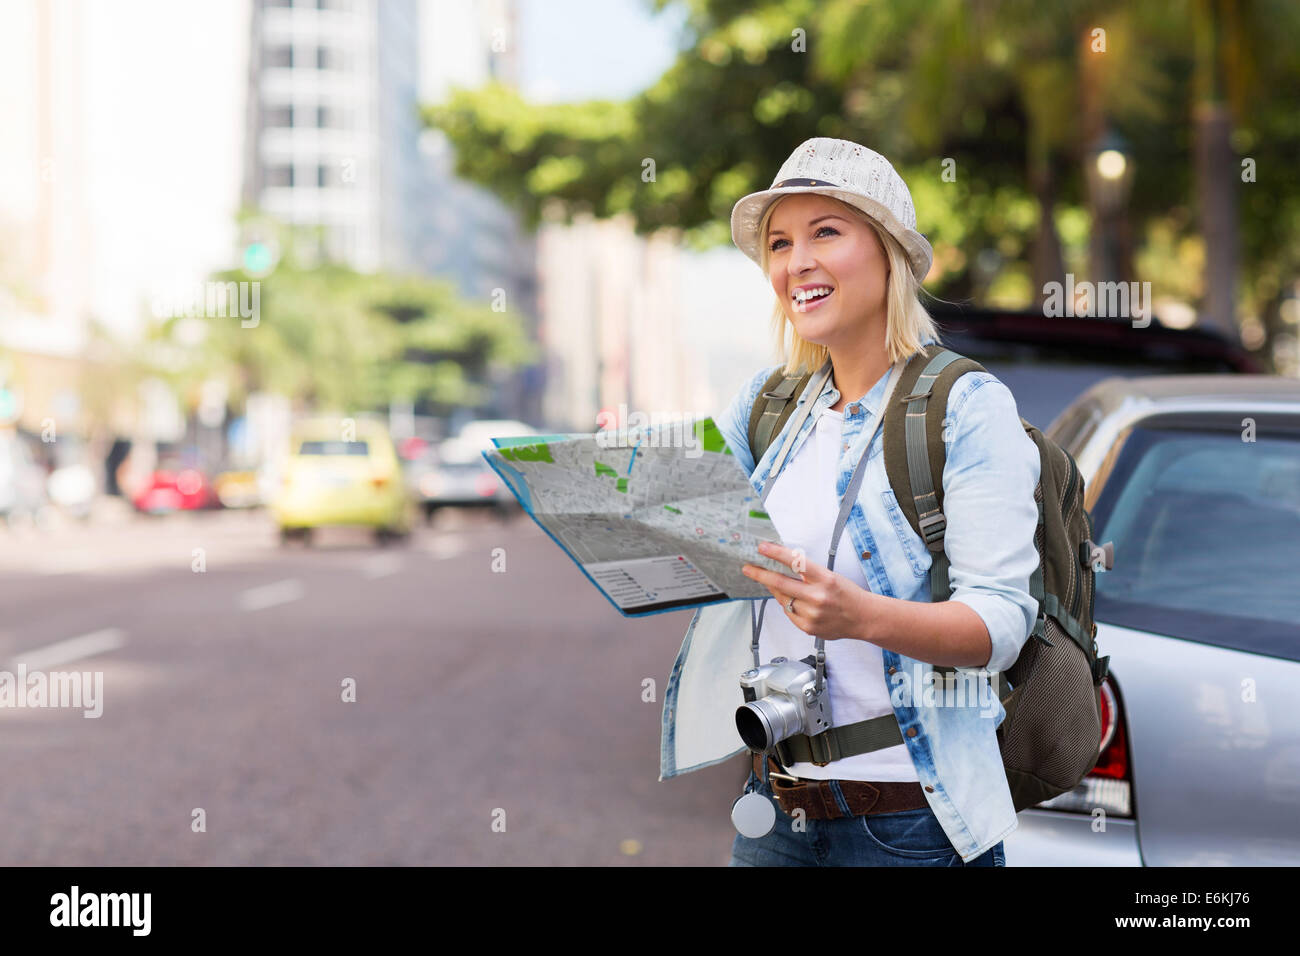 tourist standing on the sidewalk of an urban street with map - Stock Image